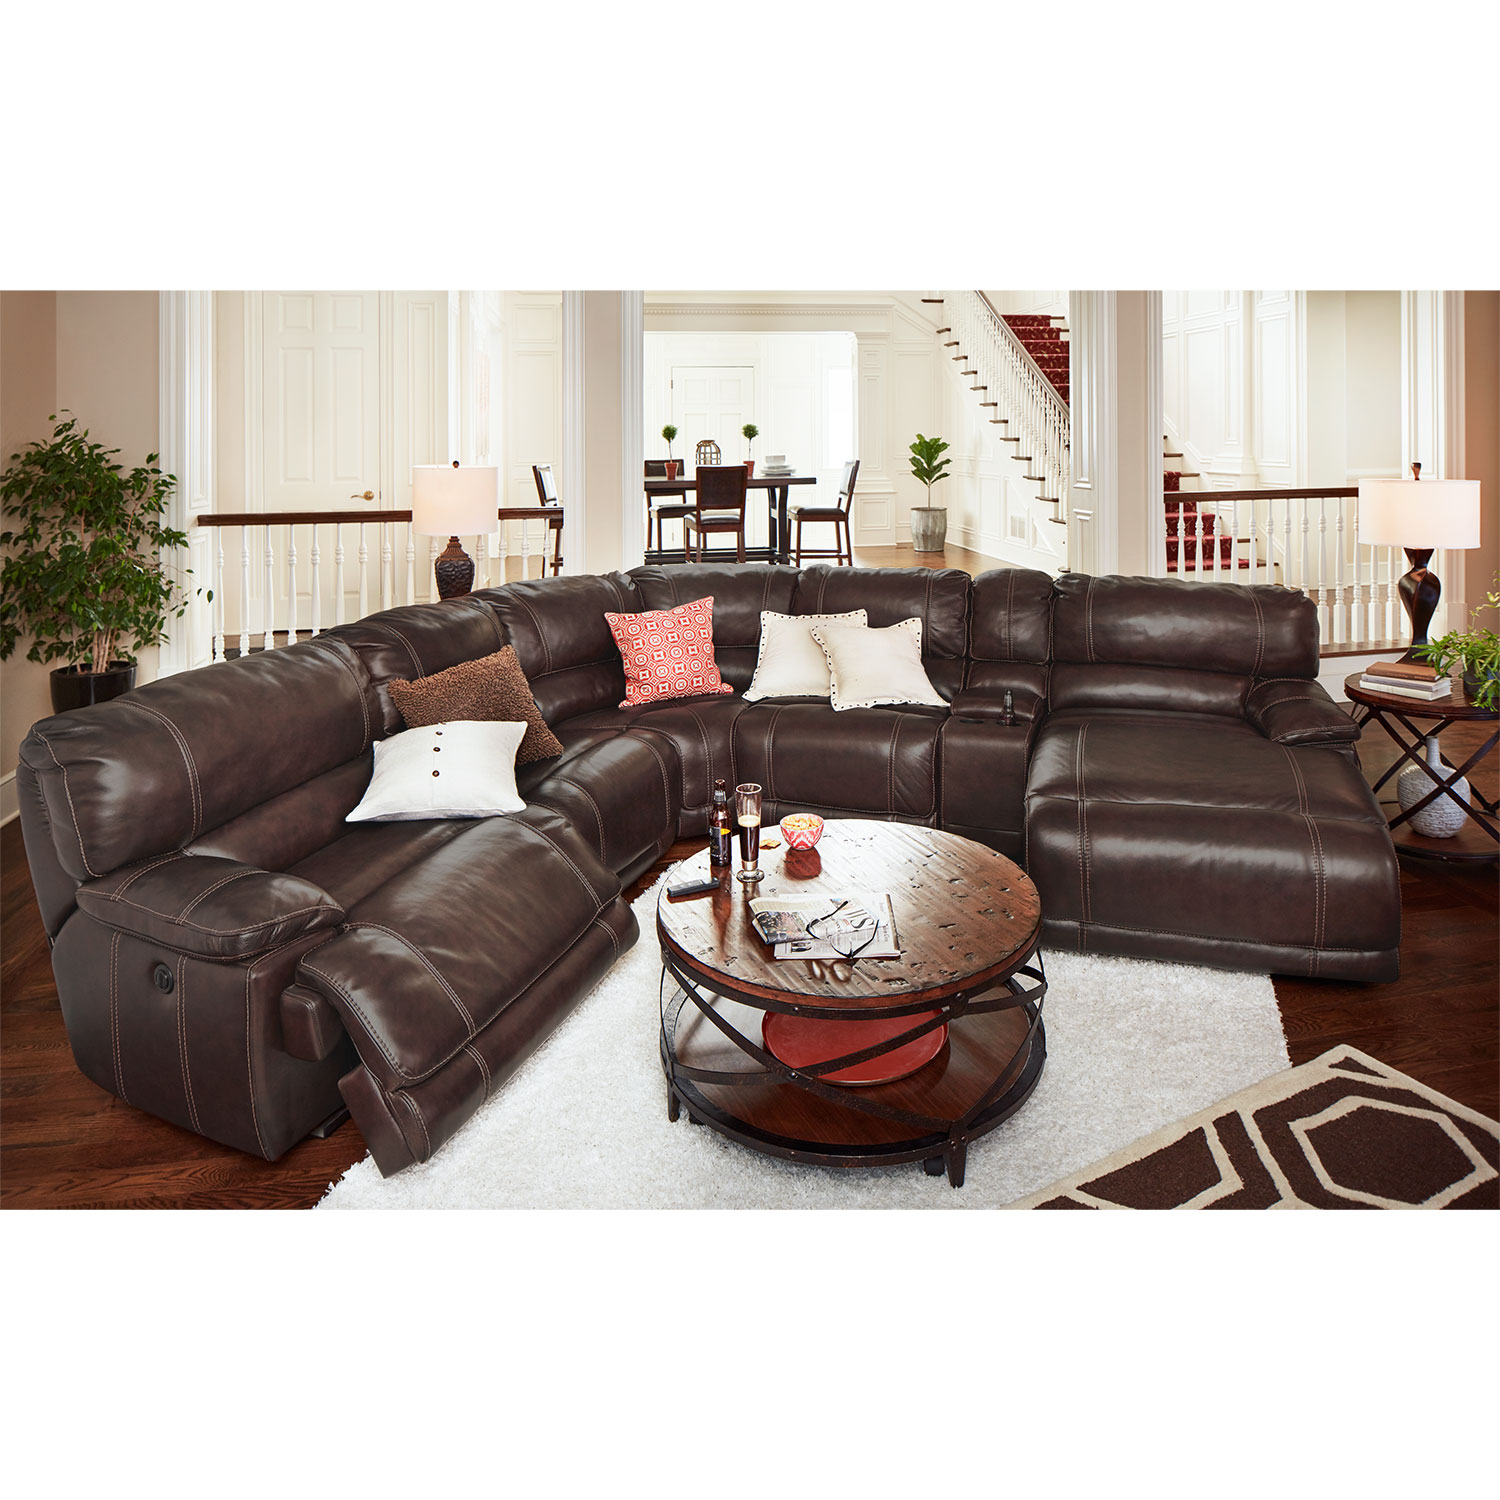 living sectionals left chaise st item malo room seating facing sectional product reclining piece power with brown